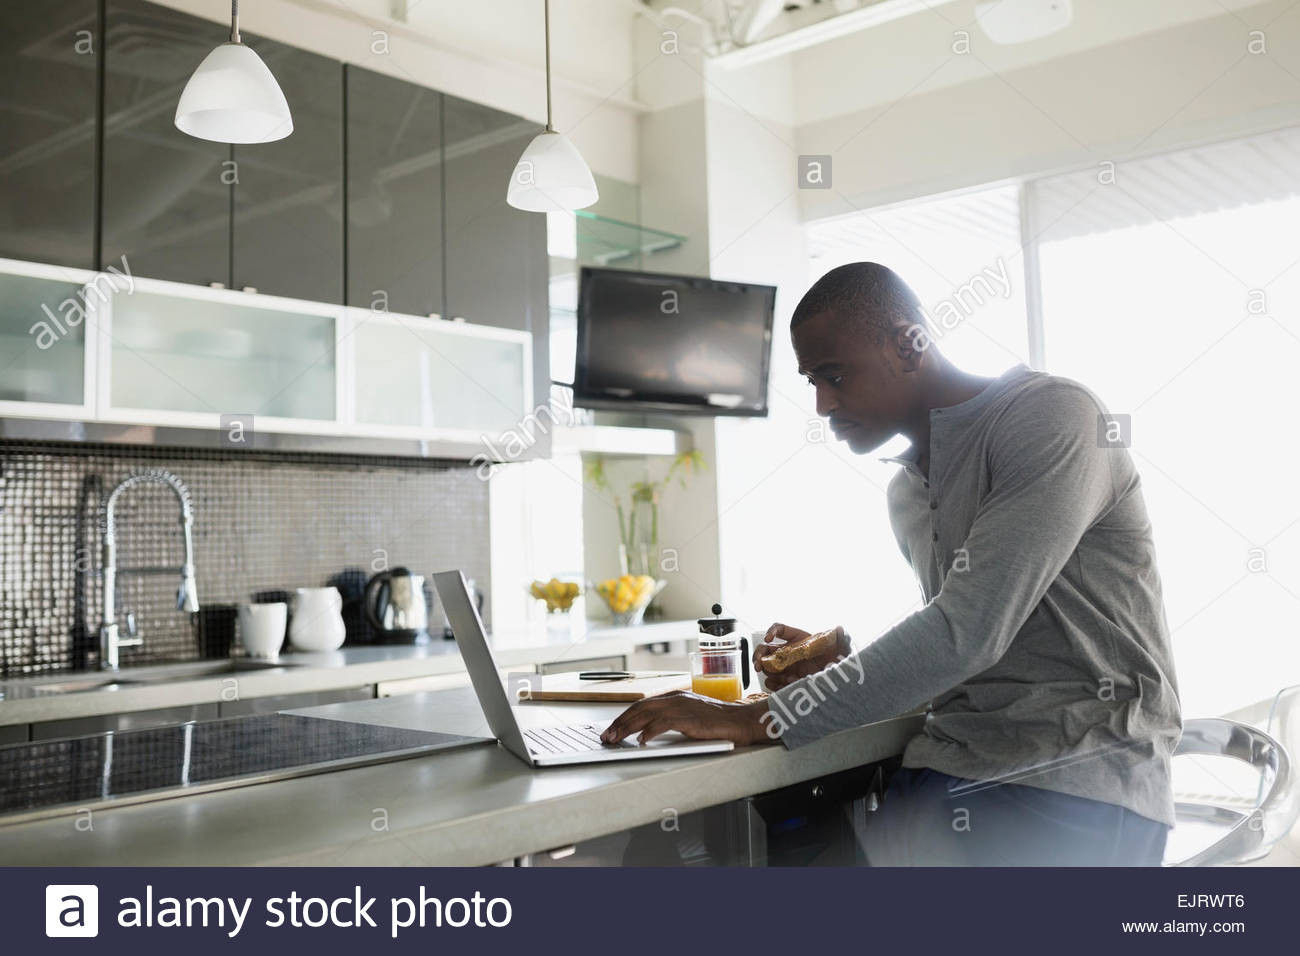 Man Using Laptop At Breakfast Bar In Kitchen Stock Photo ...